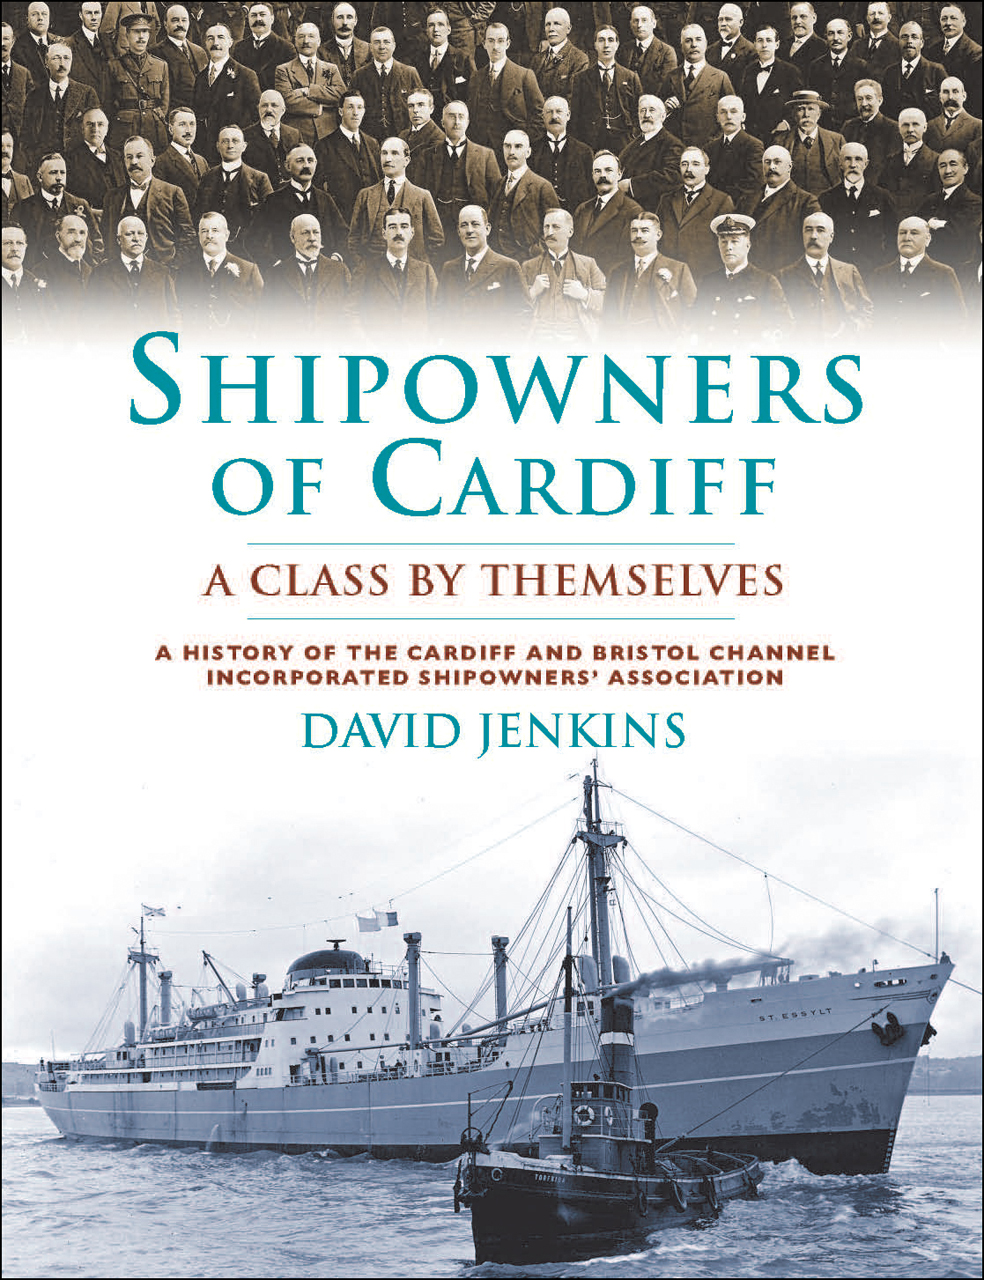 Shipowners of Cardiff: A Class by Themselves: A History of the Cardiff and Bristol Channel Incorporated Shipowners' Association